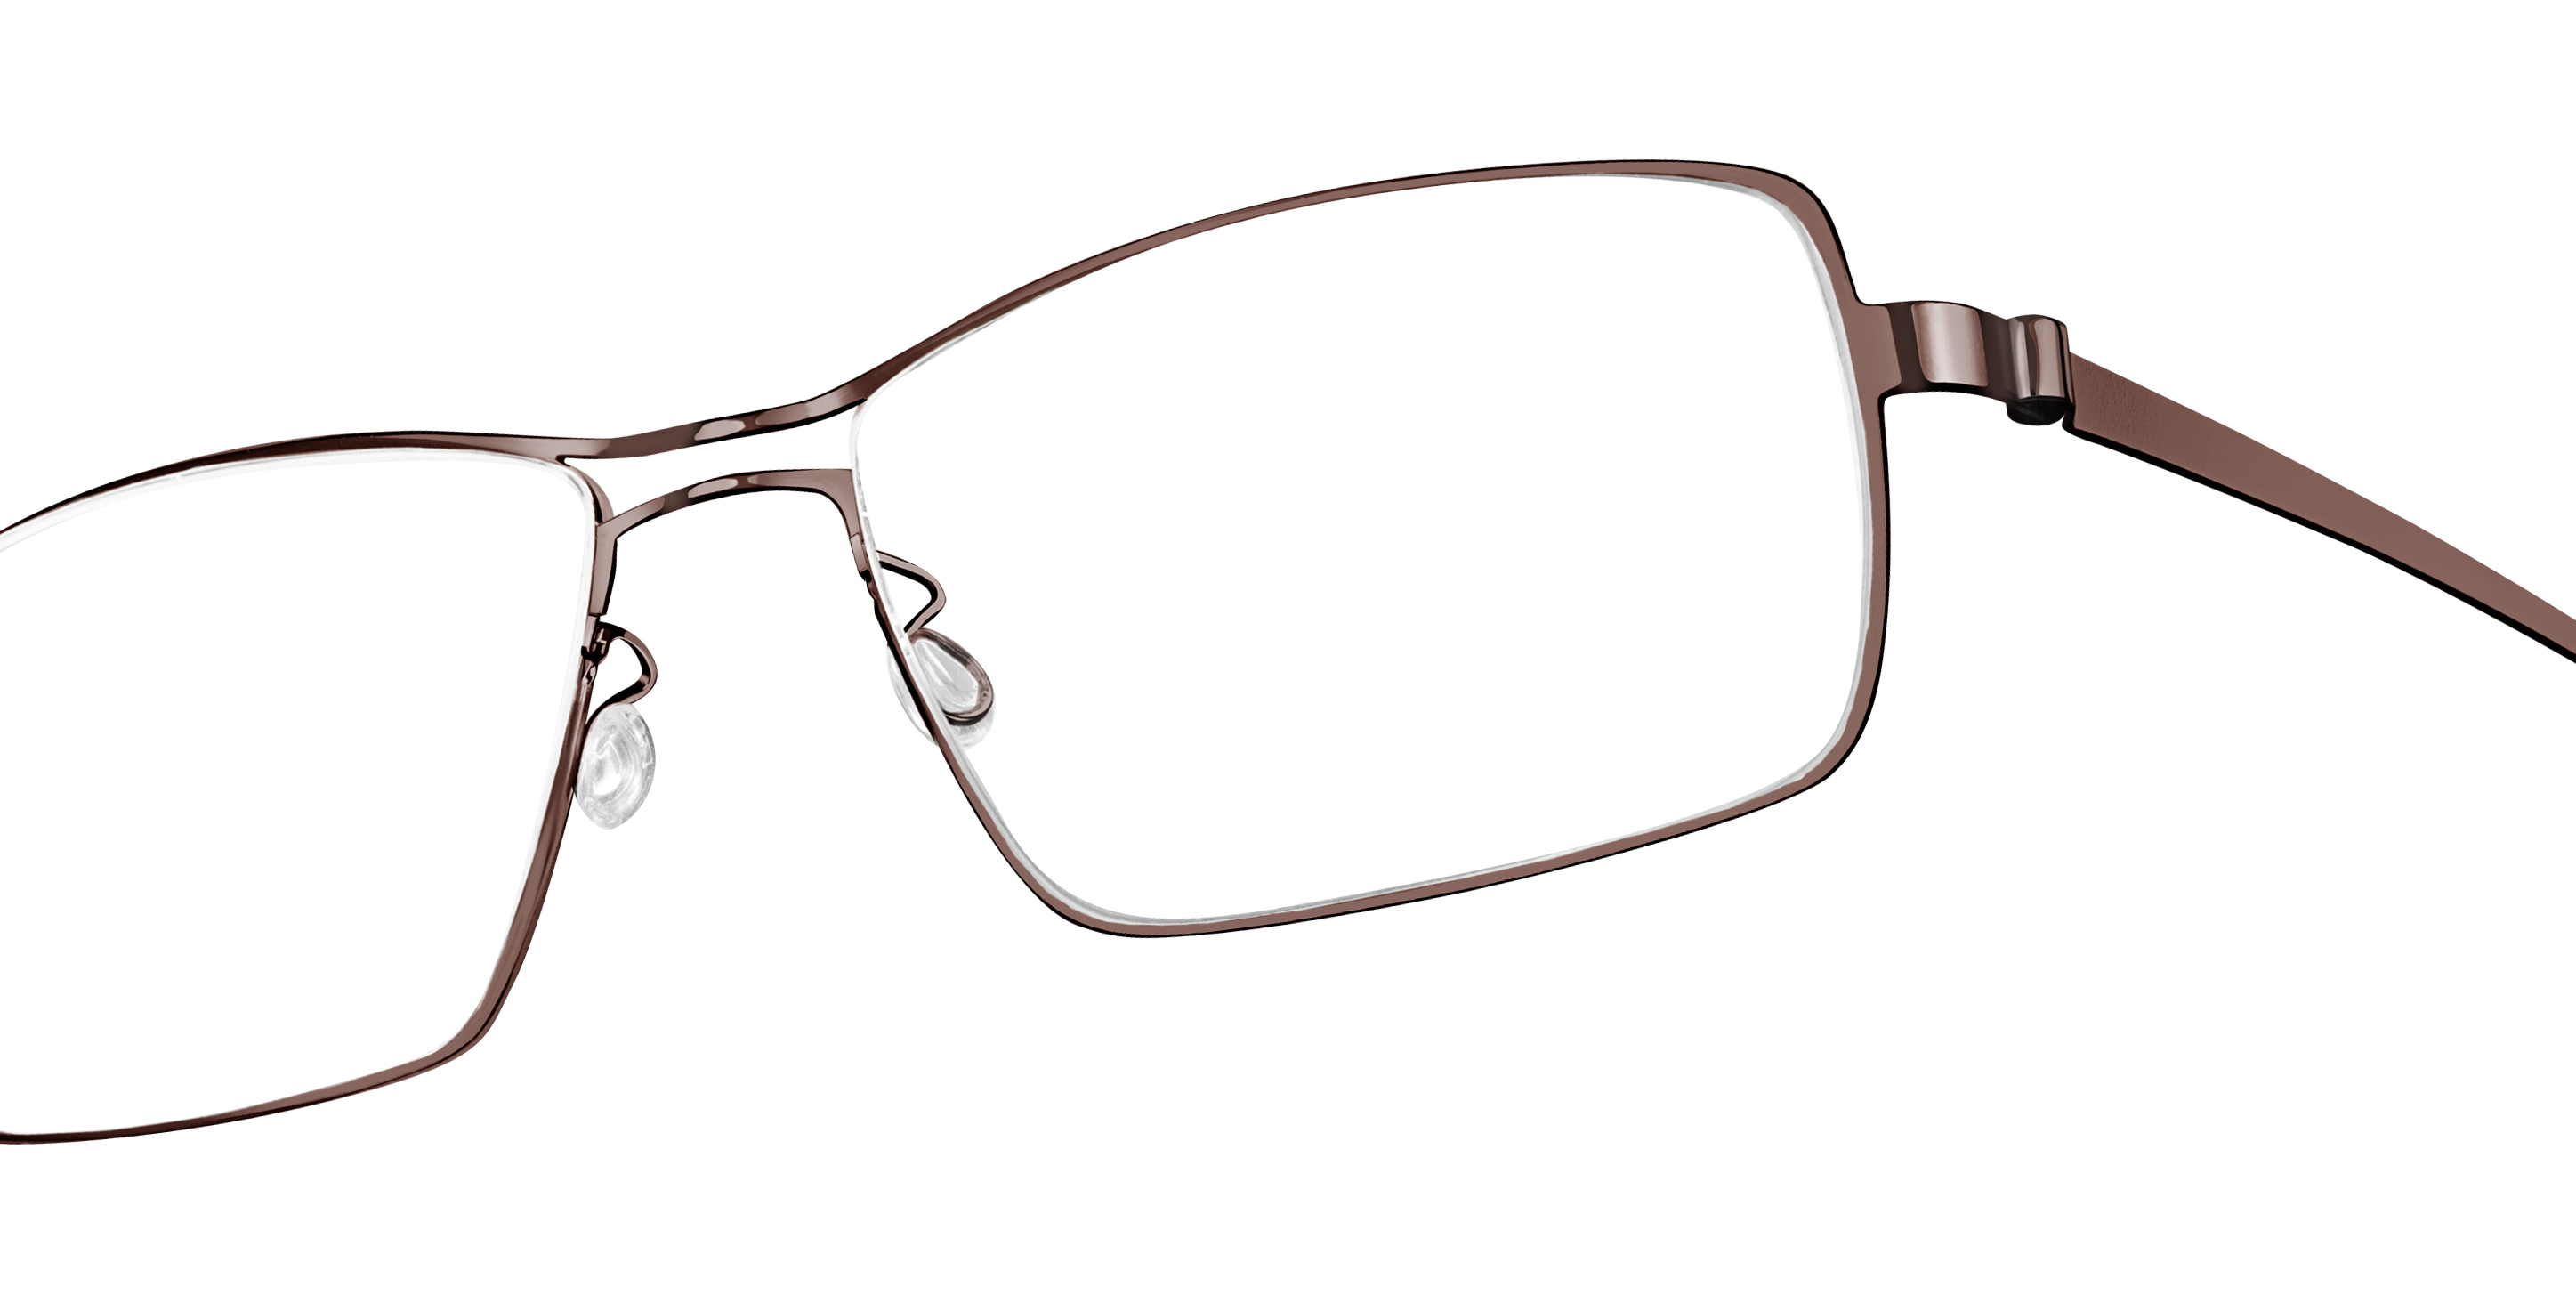 Glasses Frames Lindberg : Lindberg Prescription Glasses Barnard Levit